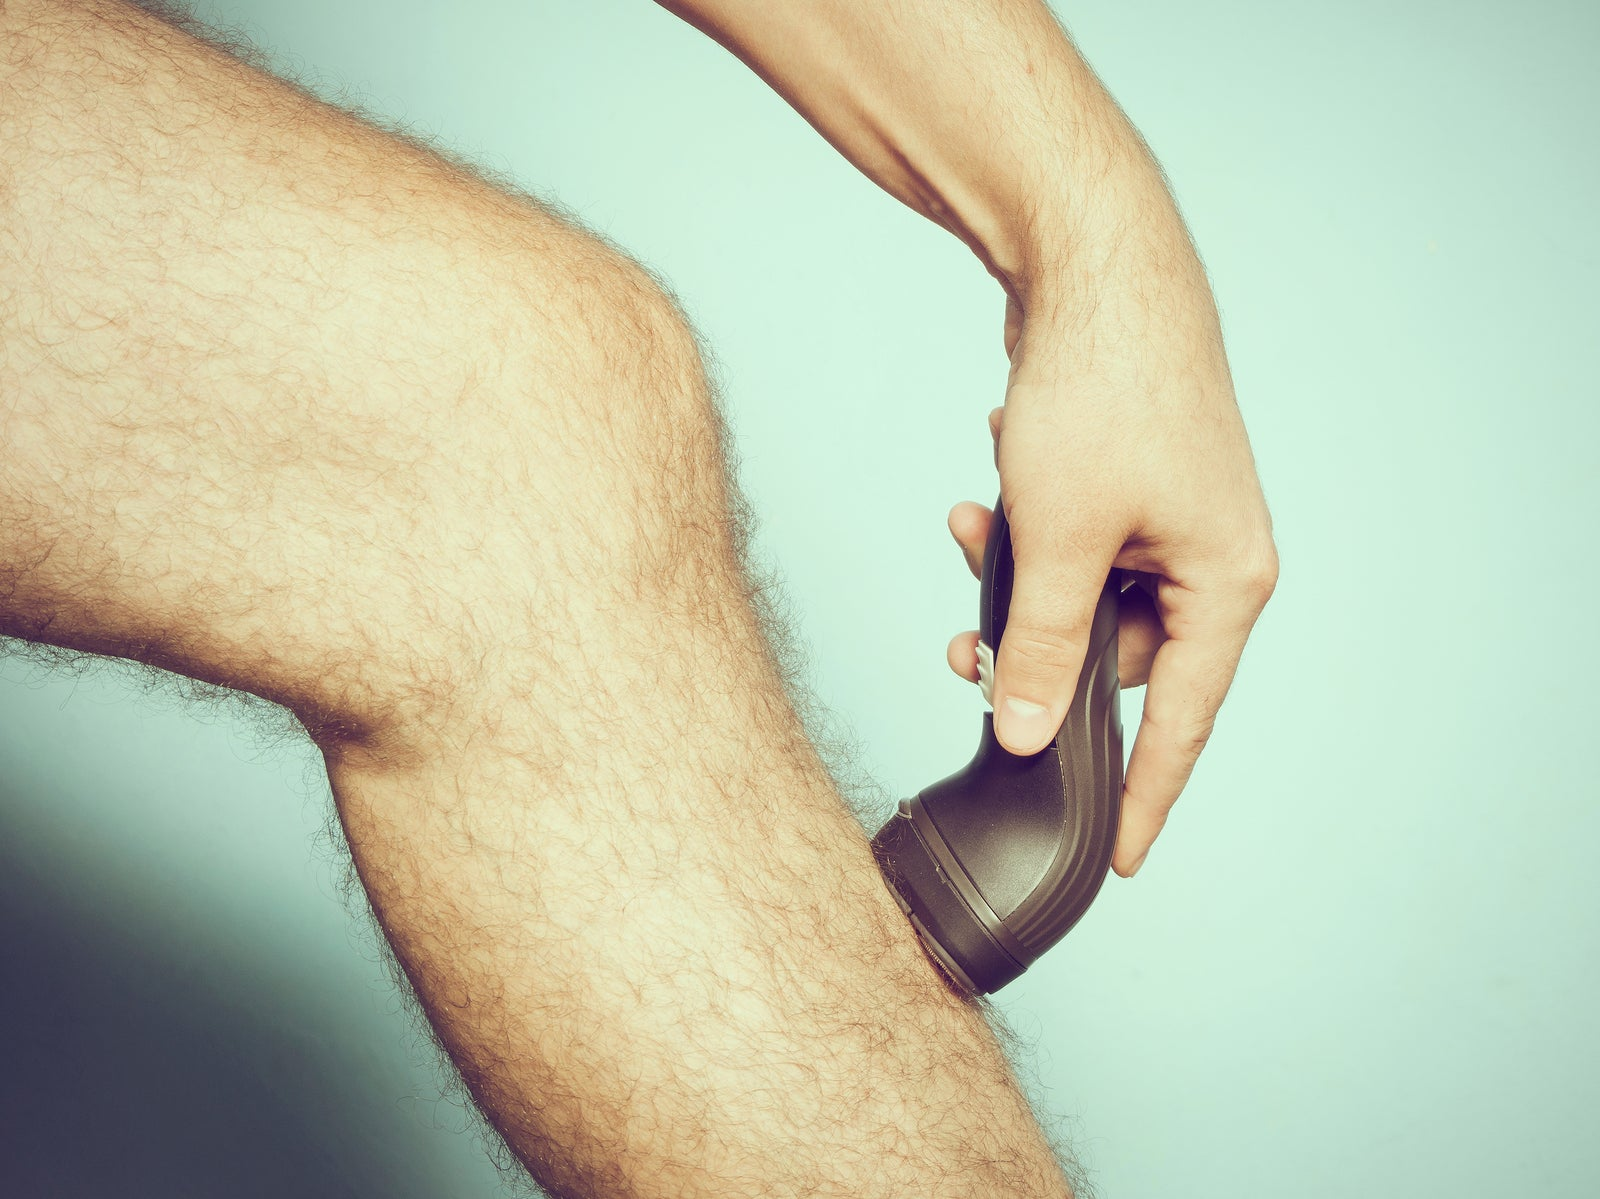 goddesses dont shave their legs essay Why do women have to shave but not men how come it's ok for men to wear shorts and show their hairy legs, but men don't shave their armpits.